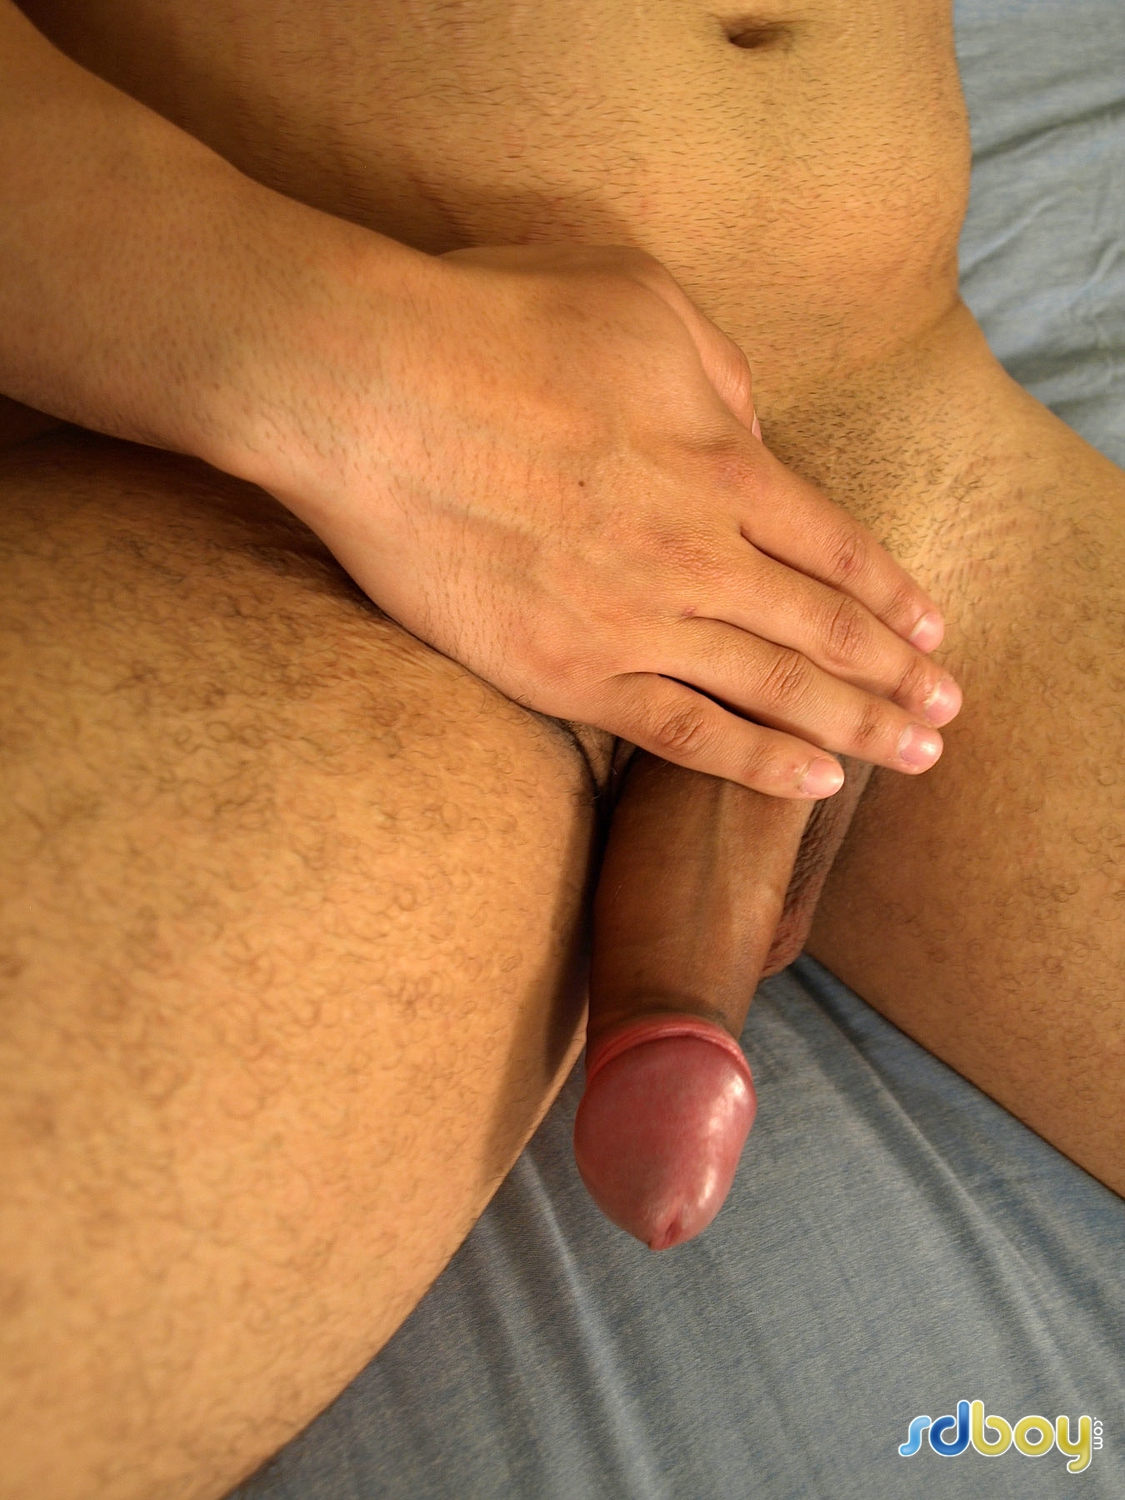 SD Boy Ray Sosa Big Uncut Cock Latino Marine Masturbating Amateur Gay Porn 08 Amateur Gay Latino Marine Shows His Tatts and Jerks His Uncut Cock